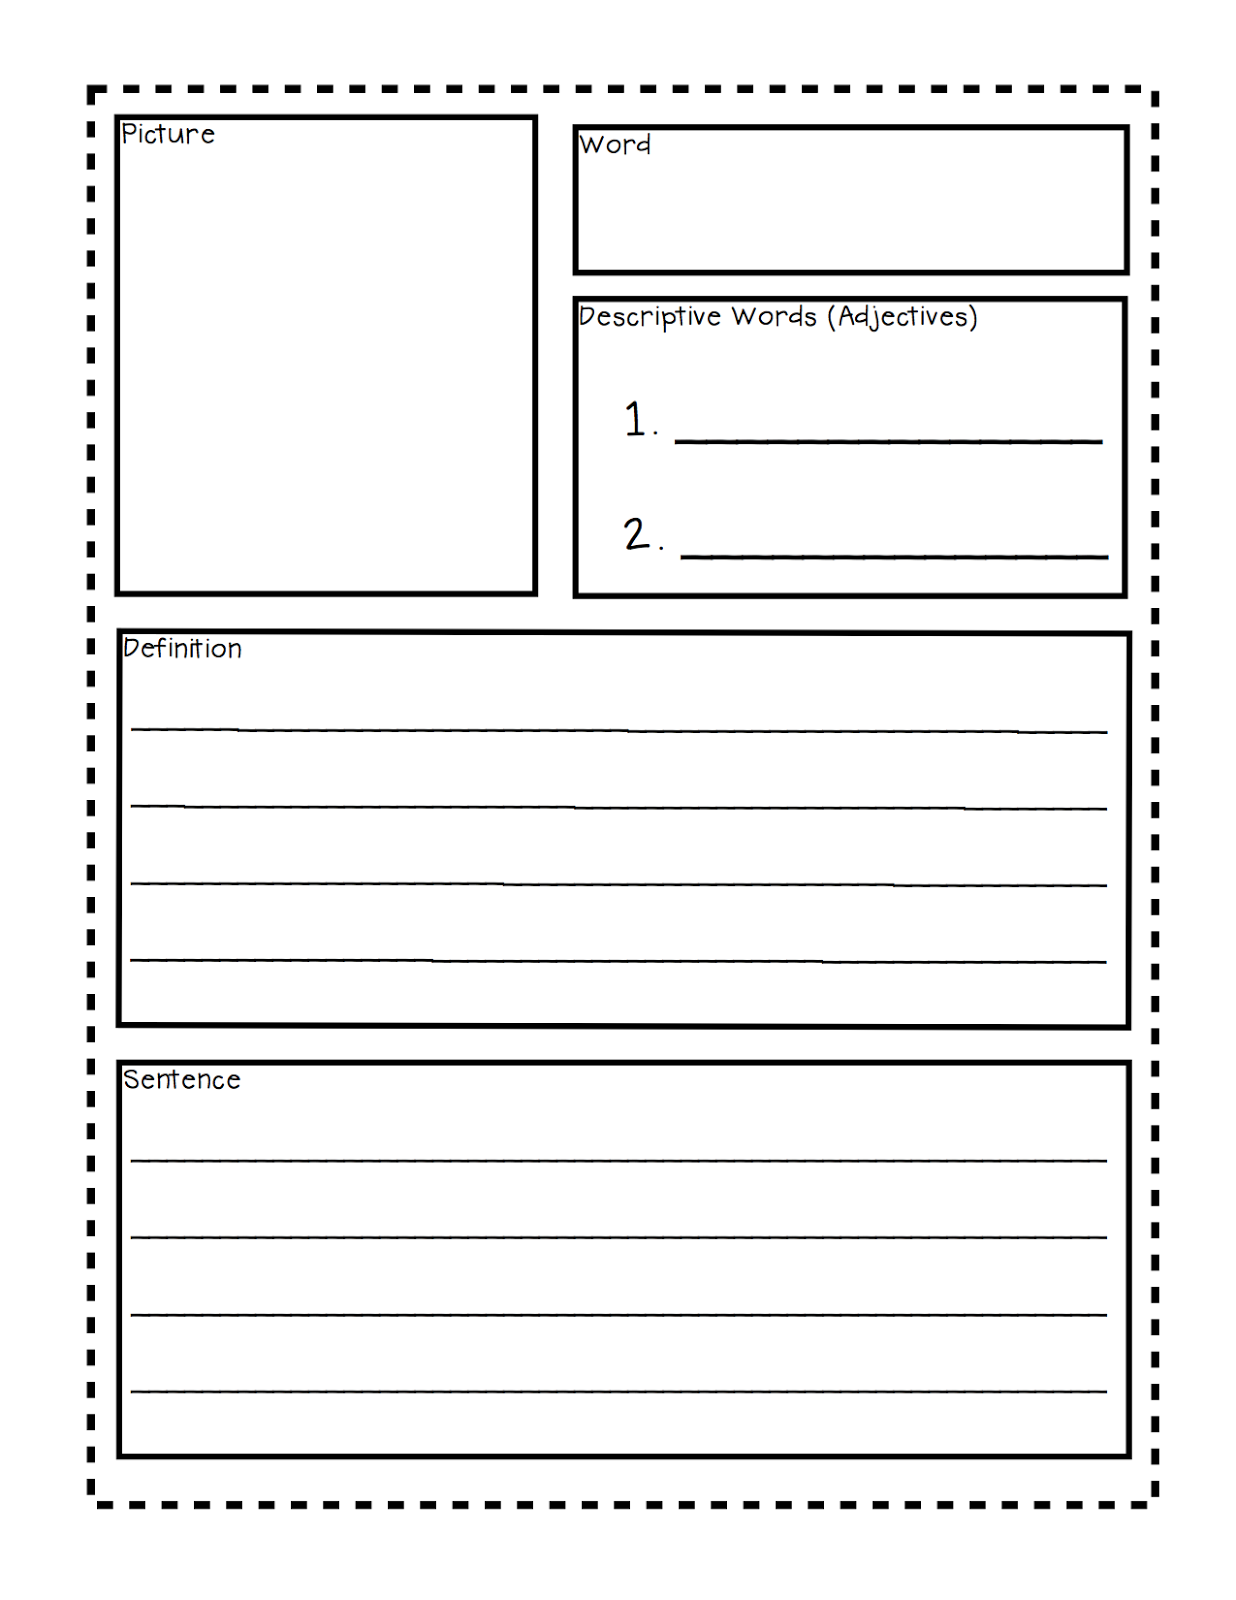 worksheet Blank Vocabulary Worksheets vocab template vocabulary sketches flashcard freeology classroom freebies too under the sea tiered templates